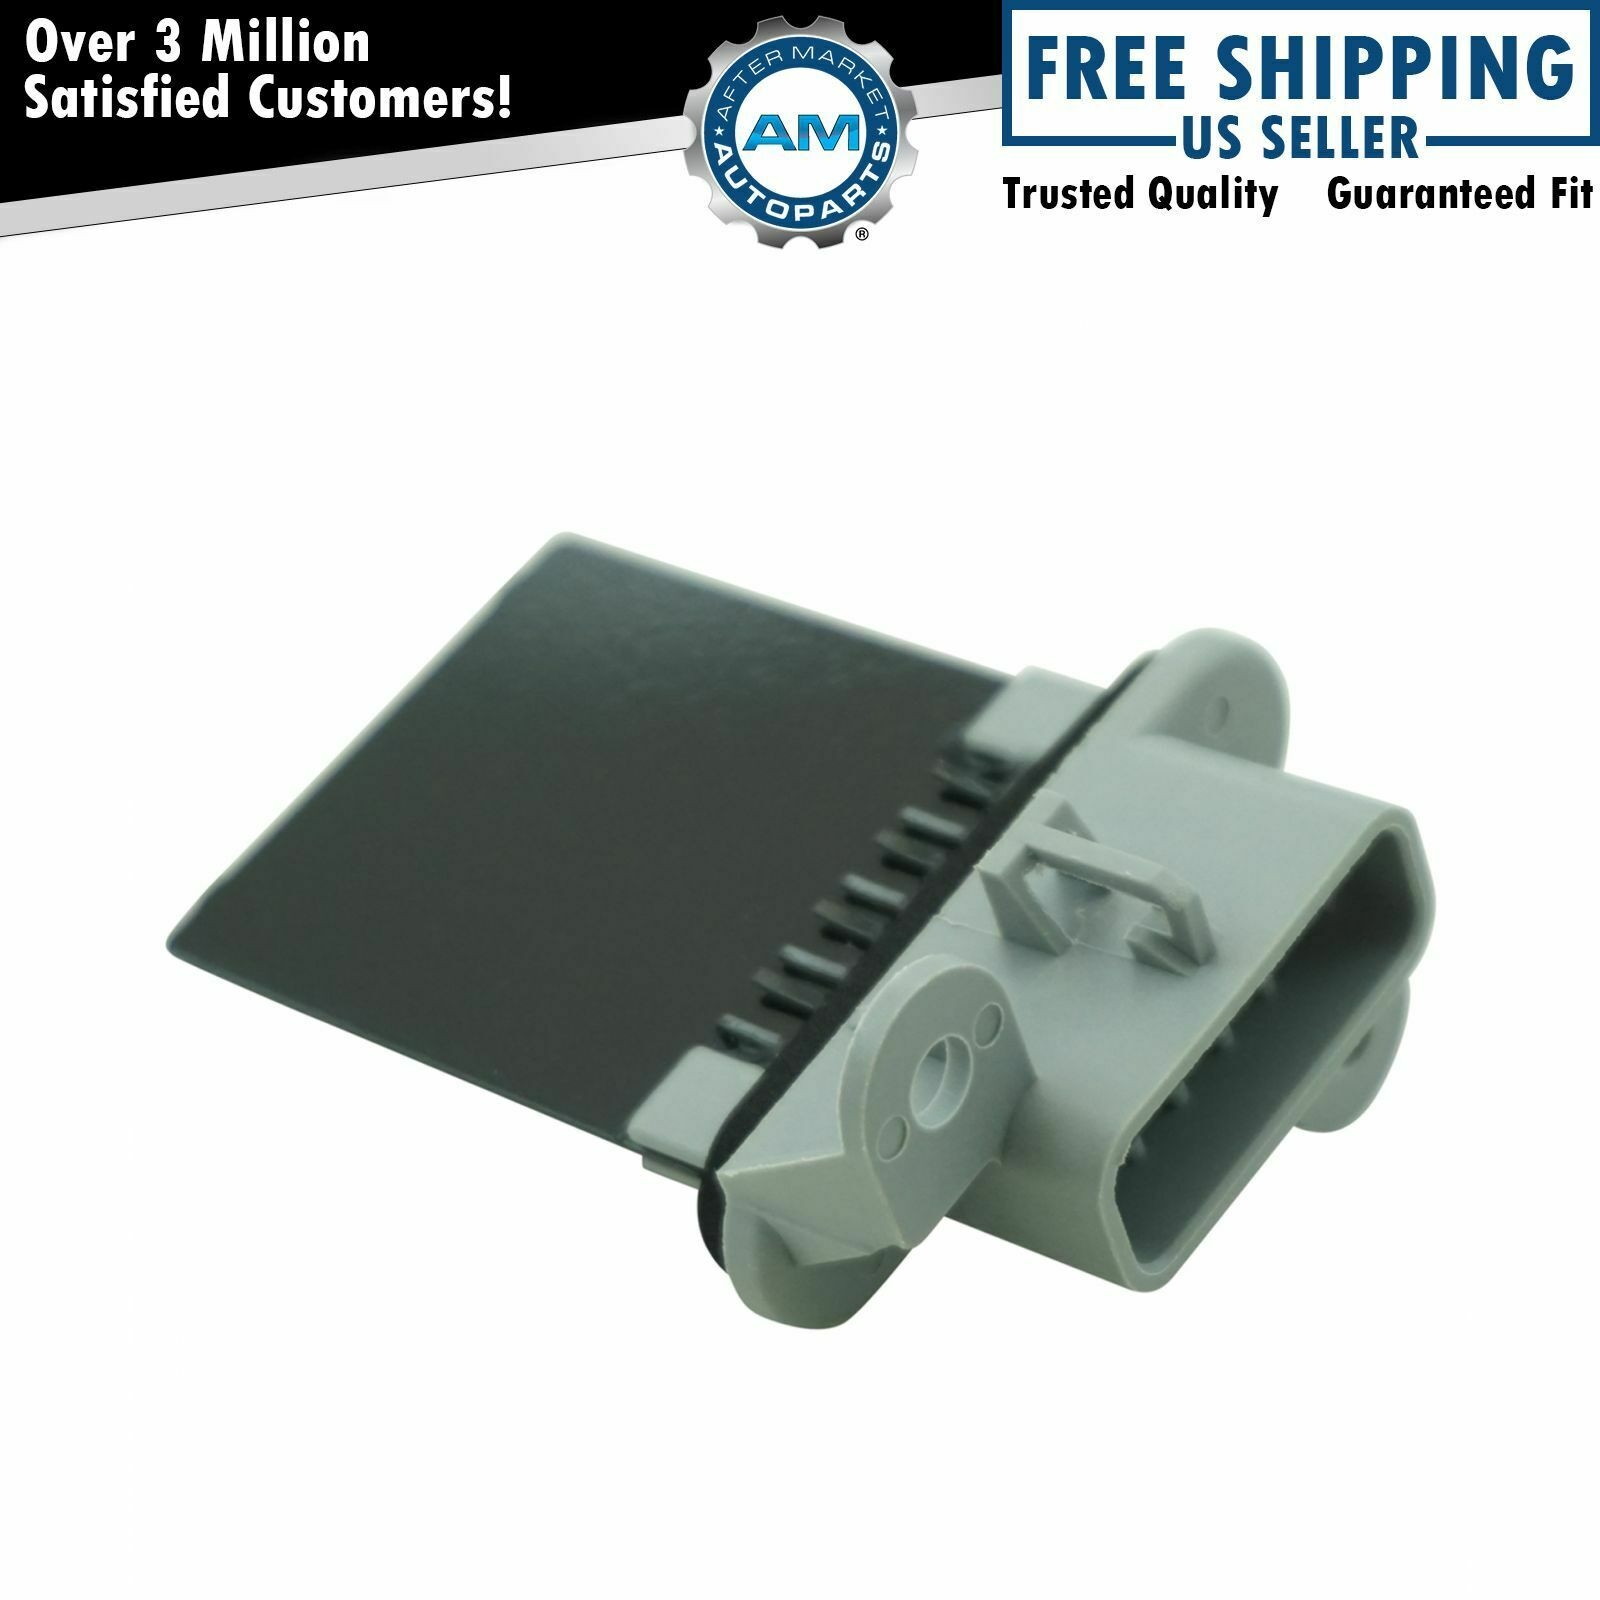 Air Conditioning A C Heater Heat Blower Motor Resistor For Saturn Control Module 2006 On Ford F150 Chevy Suv New 1 Of 4only 5 Available